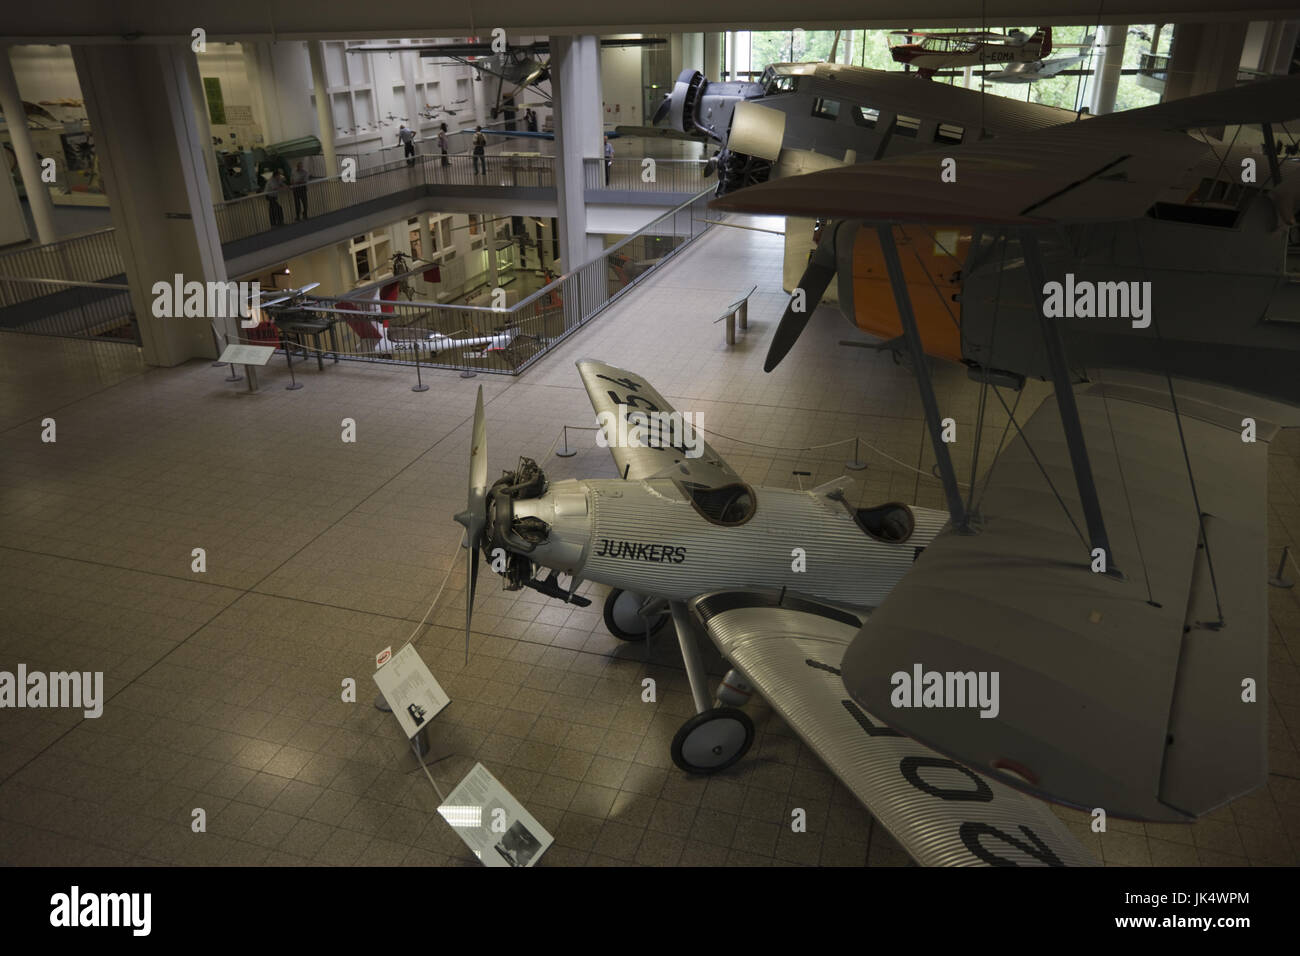 Germany, Bavaria, Munich, Deutsches Museum, Aviation Section, Junkers Monoplane, - Stock Image